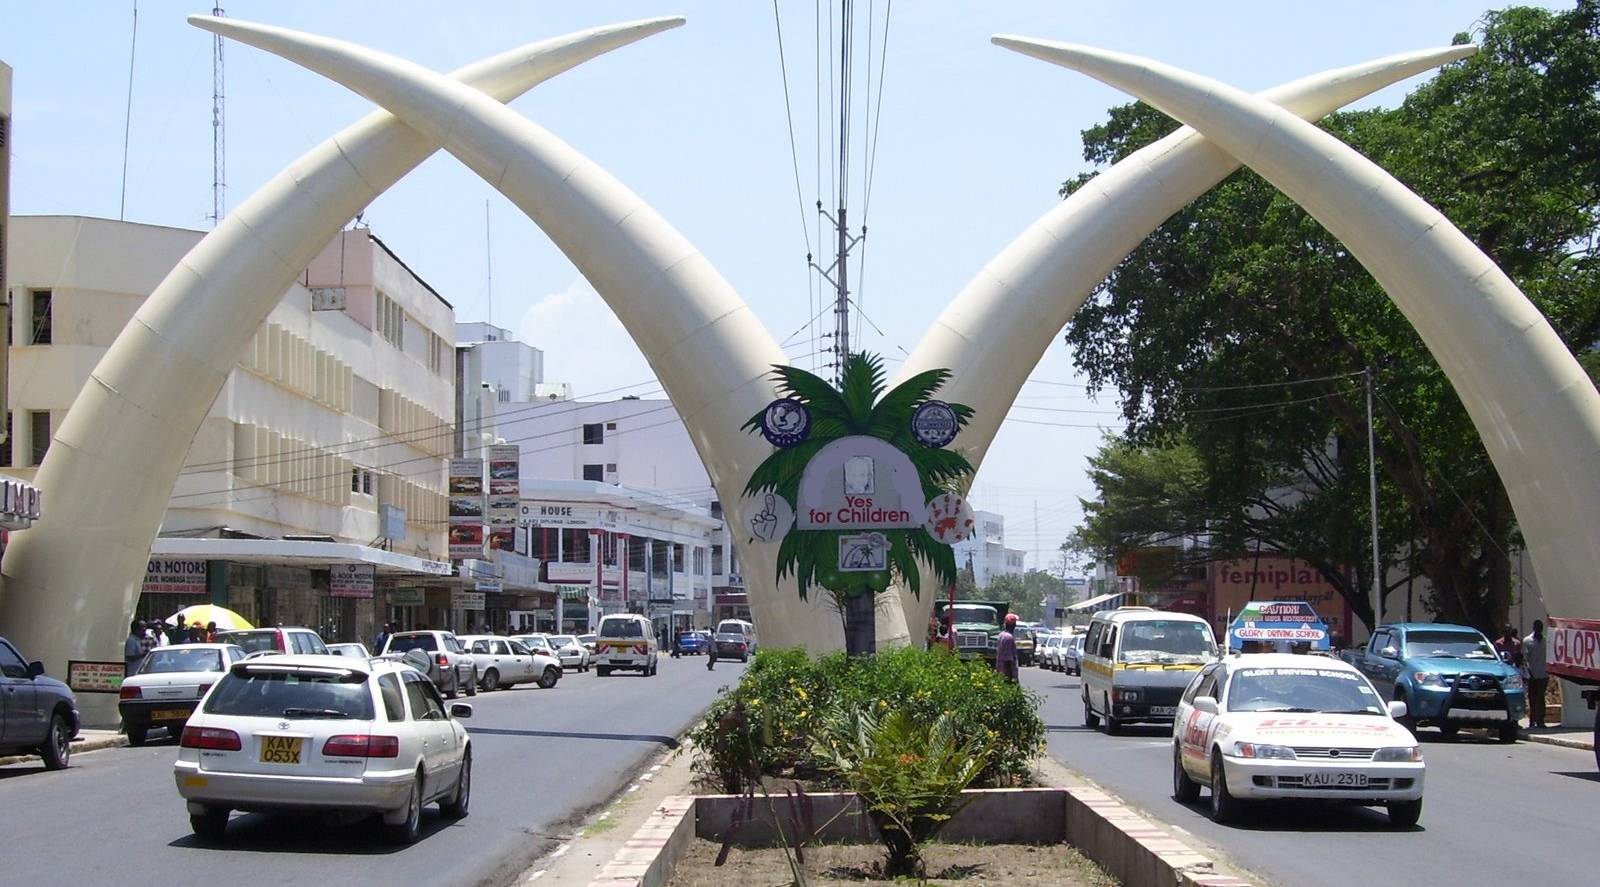 The Tusks